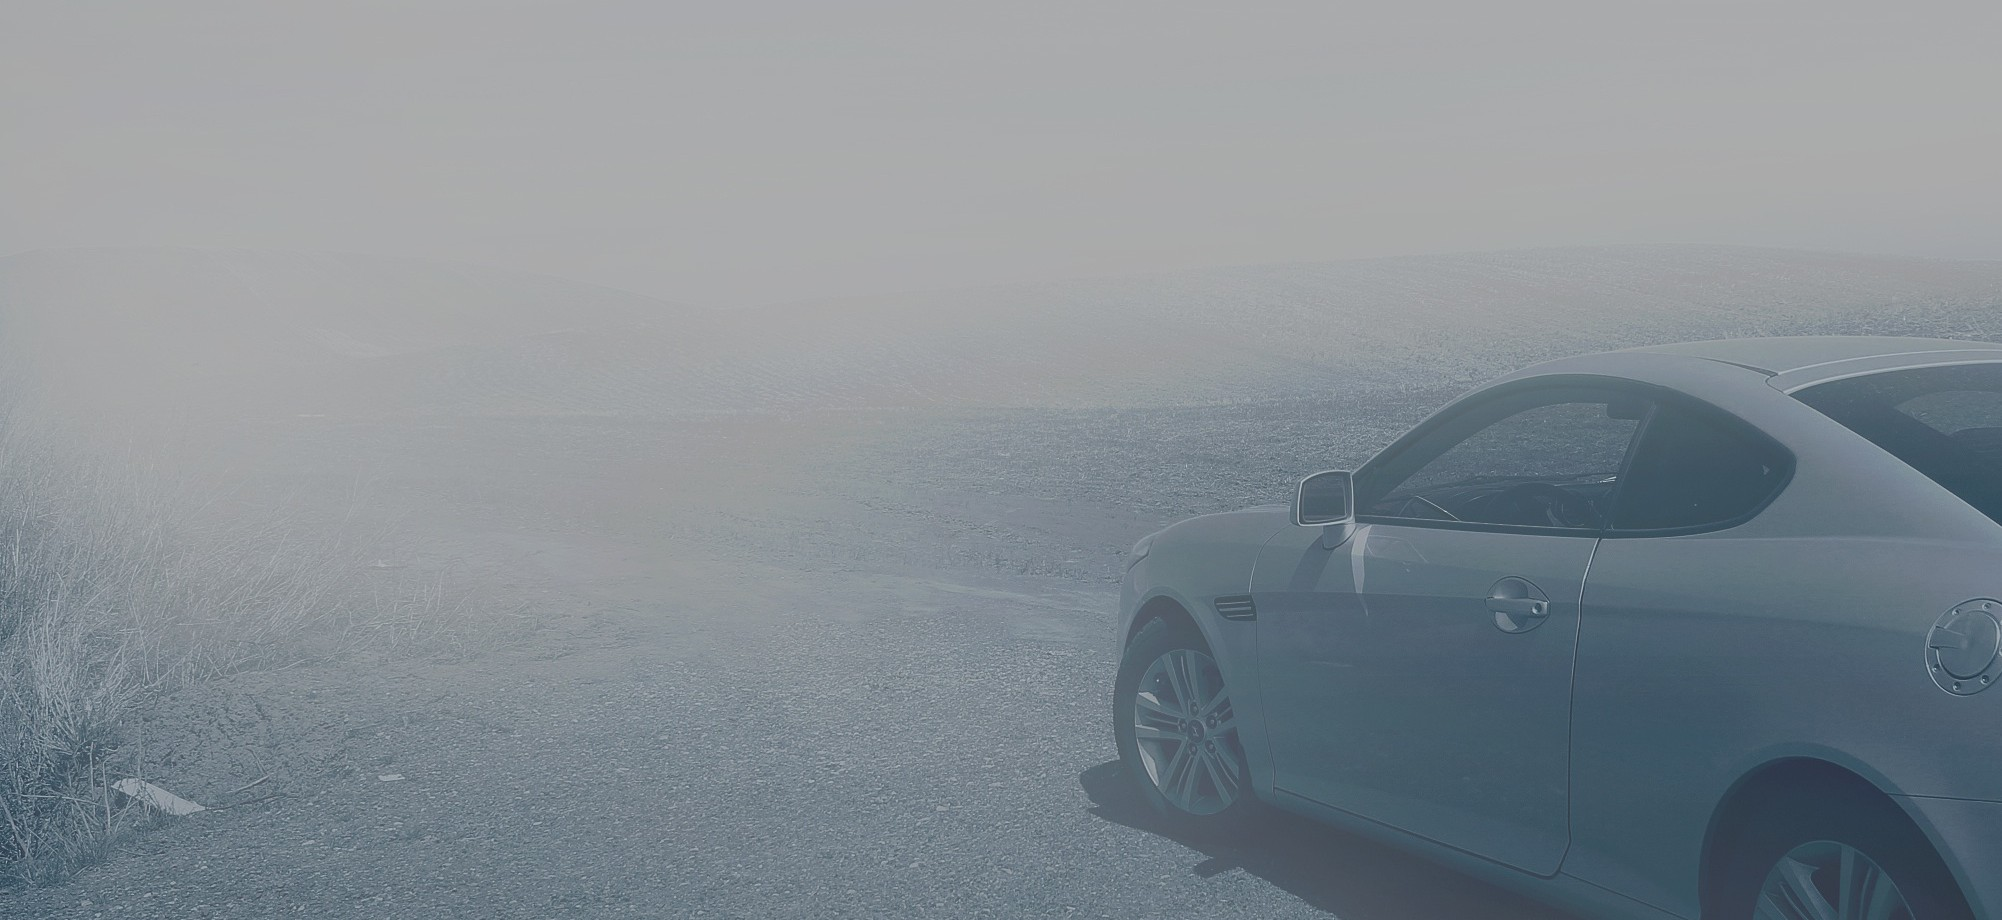 Picture of a grey car on a foggy road, by Frantzou Fleurine.